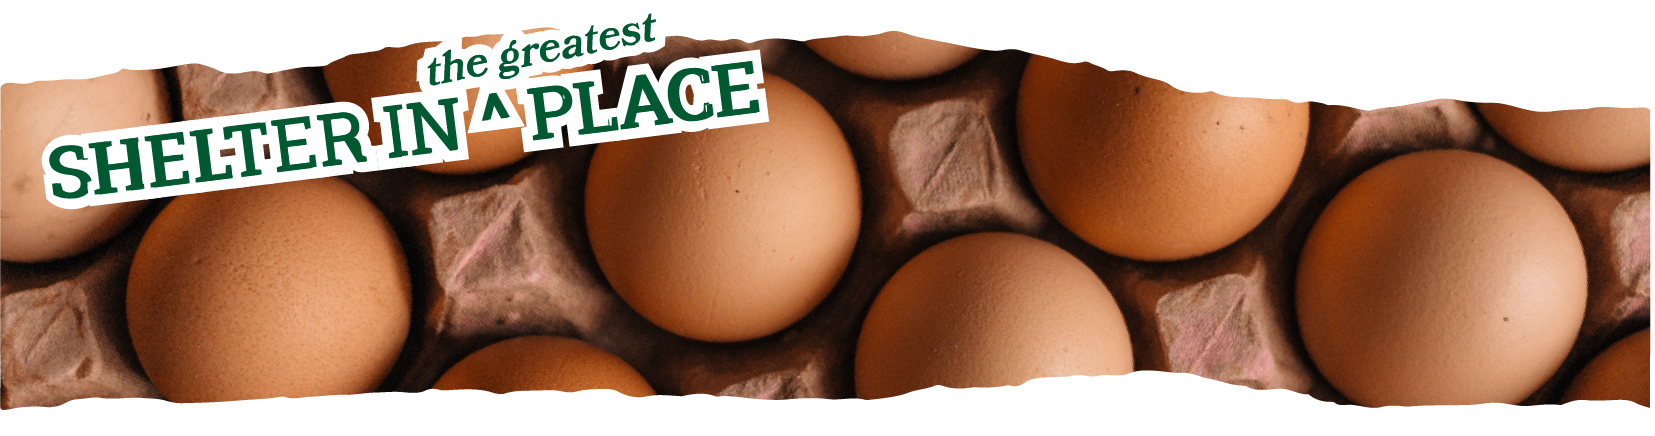 Title text: Shelter in the greatest place laid over a photo of eggs in a carton, one of the ingredients Rachel will offer substitutions and alternatives for in baking.